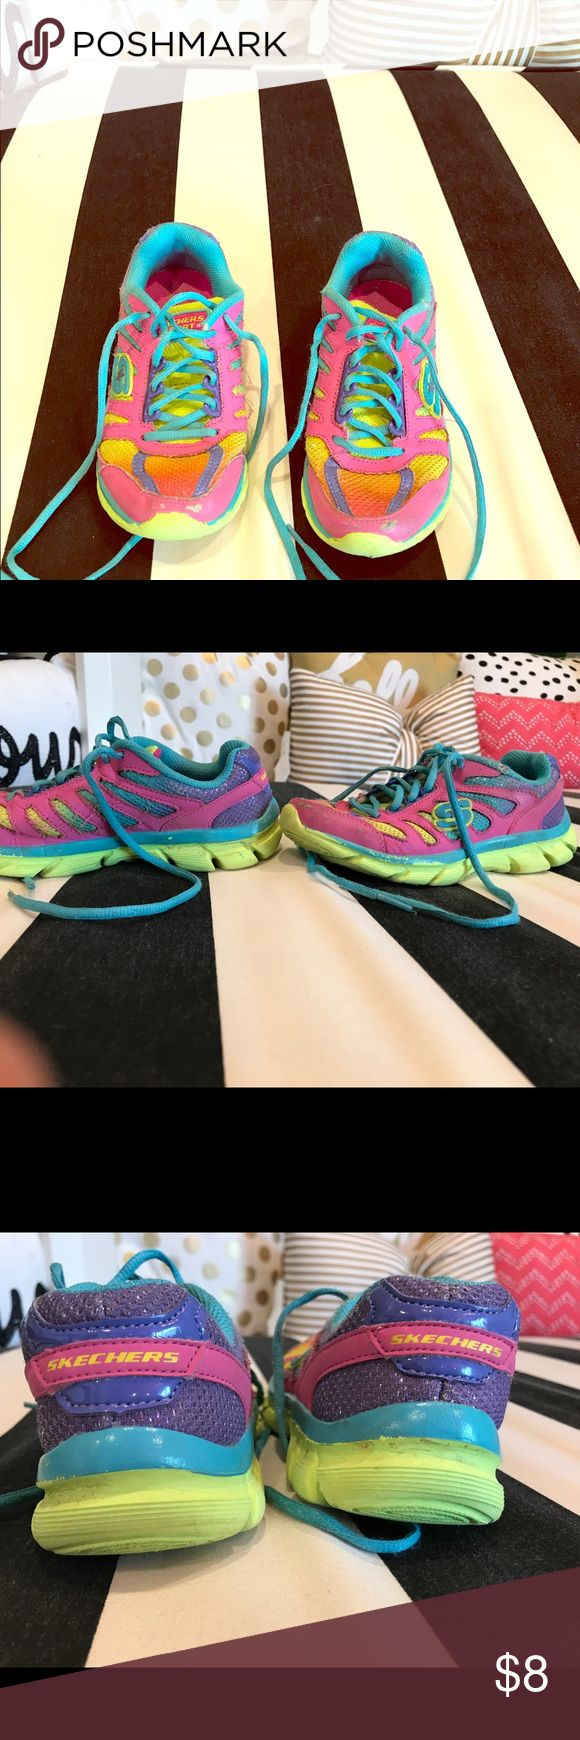 Girl tennis shoes size 13 Skechers brand size 13 girls tennis shoes. Very pretty colors! Pink, blue, orange and yellow. Has a few signs of wear, mainly on the tip of the toes. Skechers Shoes Sneakers